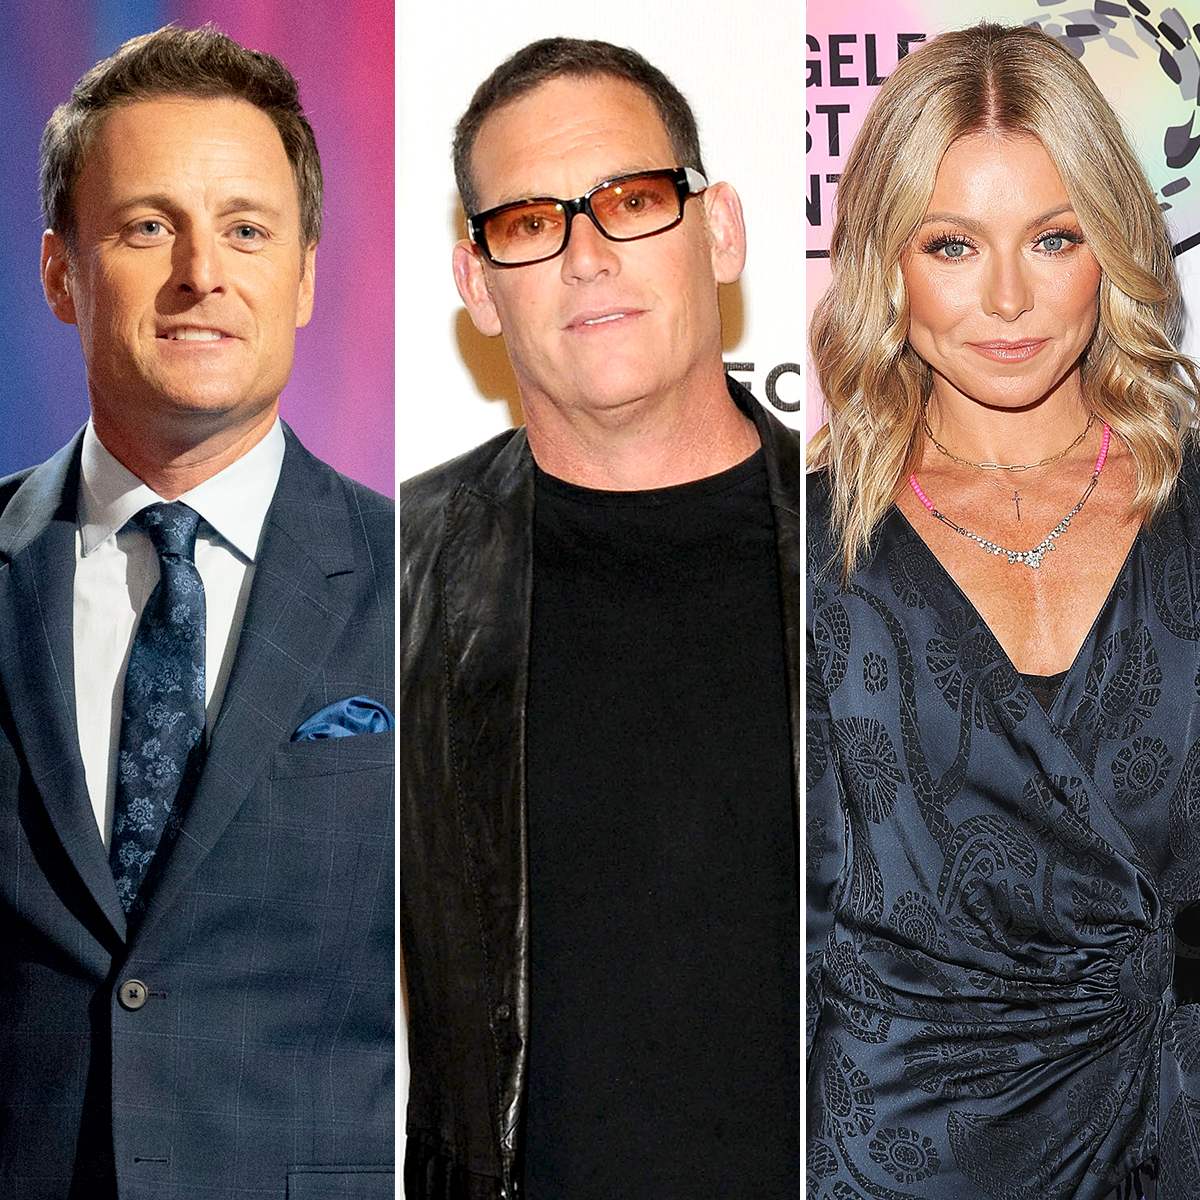 Chris-Harrison-Mike-Fleiss-Kelly-Ripa-Bachelorette-Critique